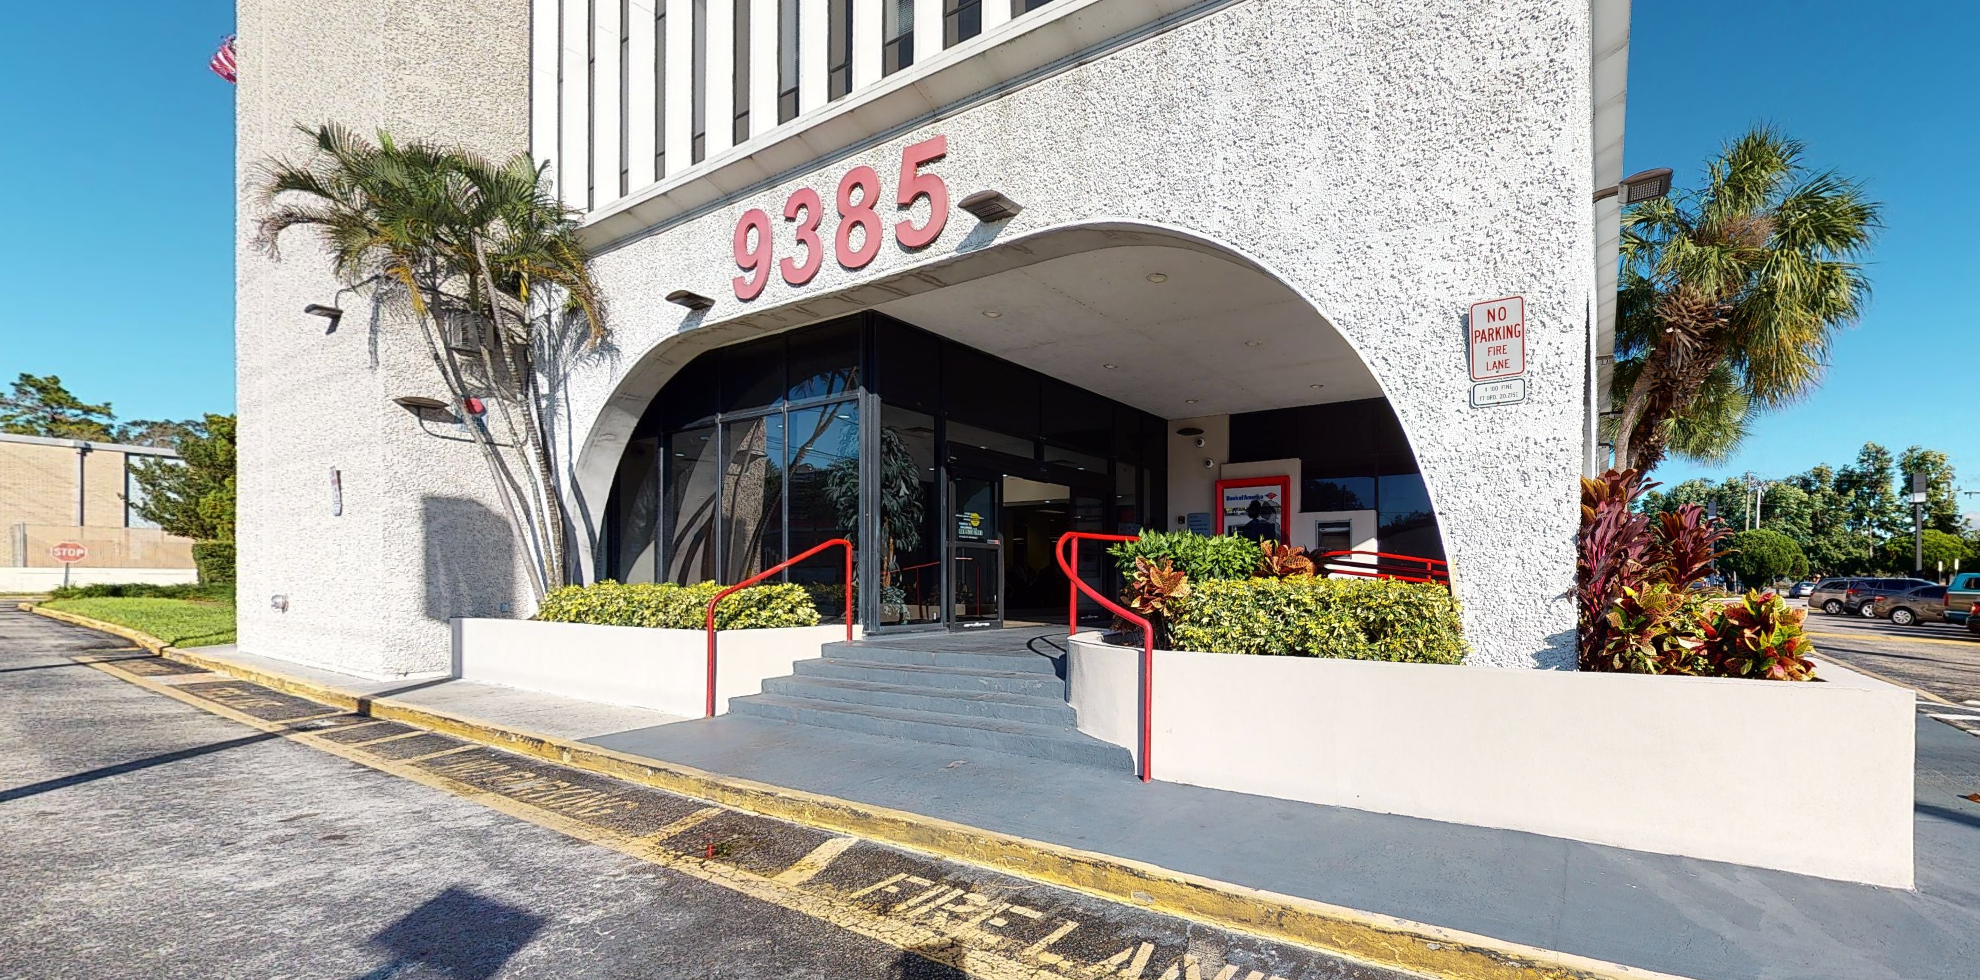 Bank of America financial center with drive-thru ATM | 9385 N 56th St, Temple Terrace, FL 33617